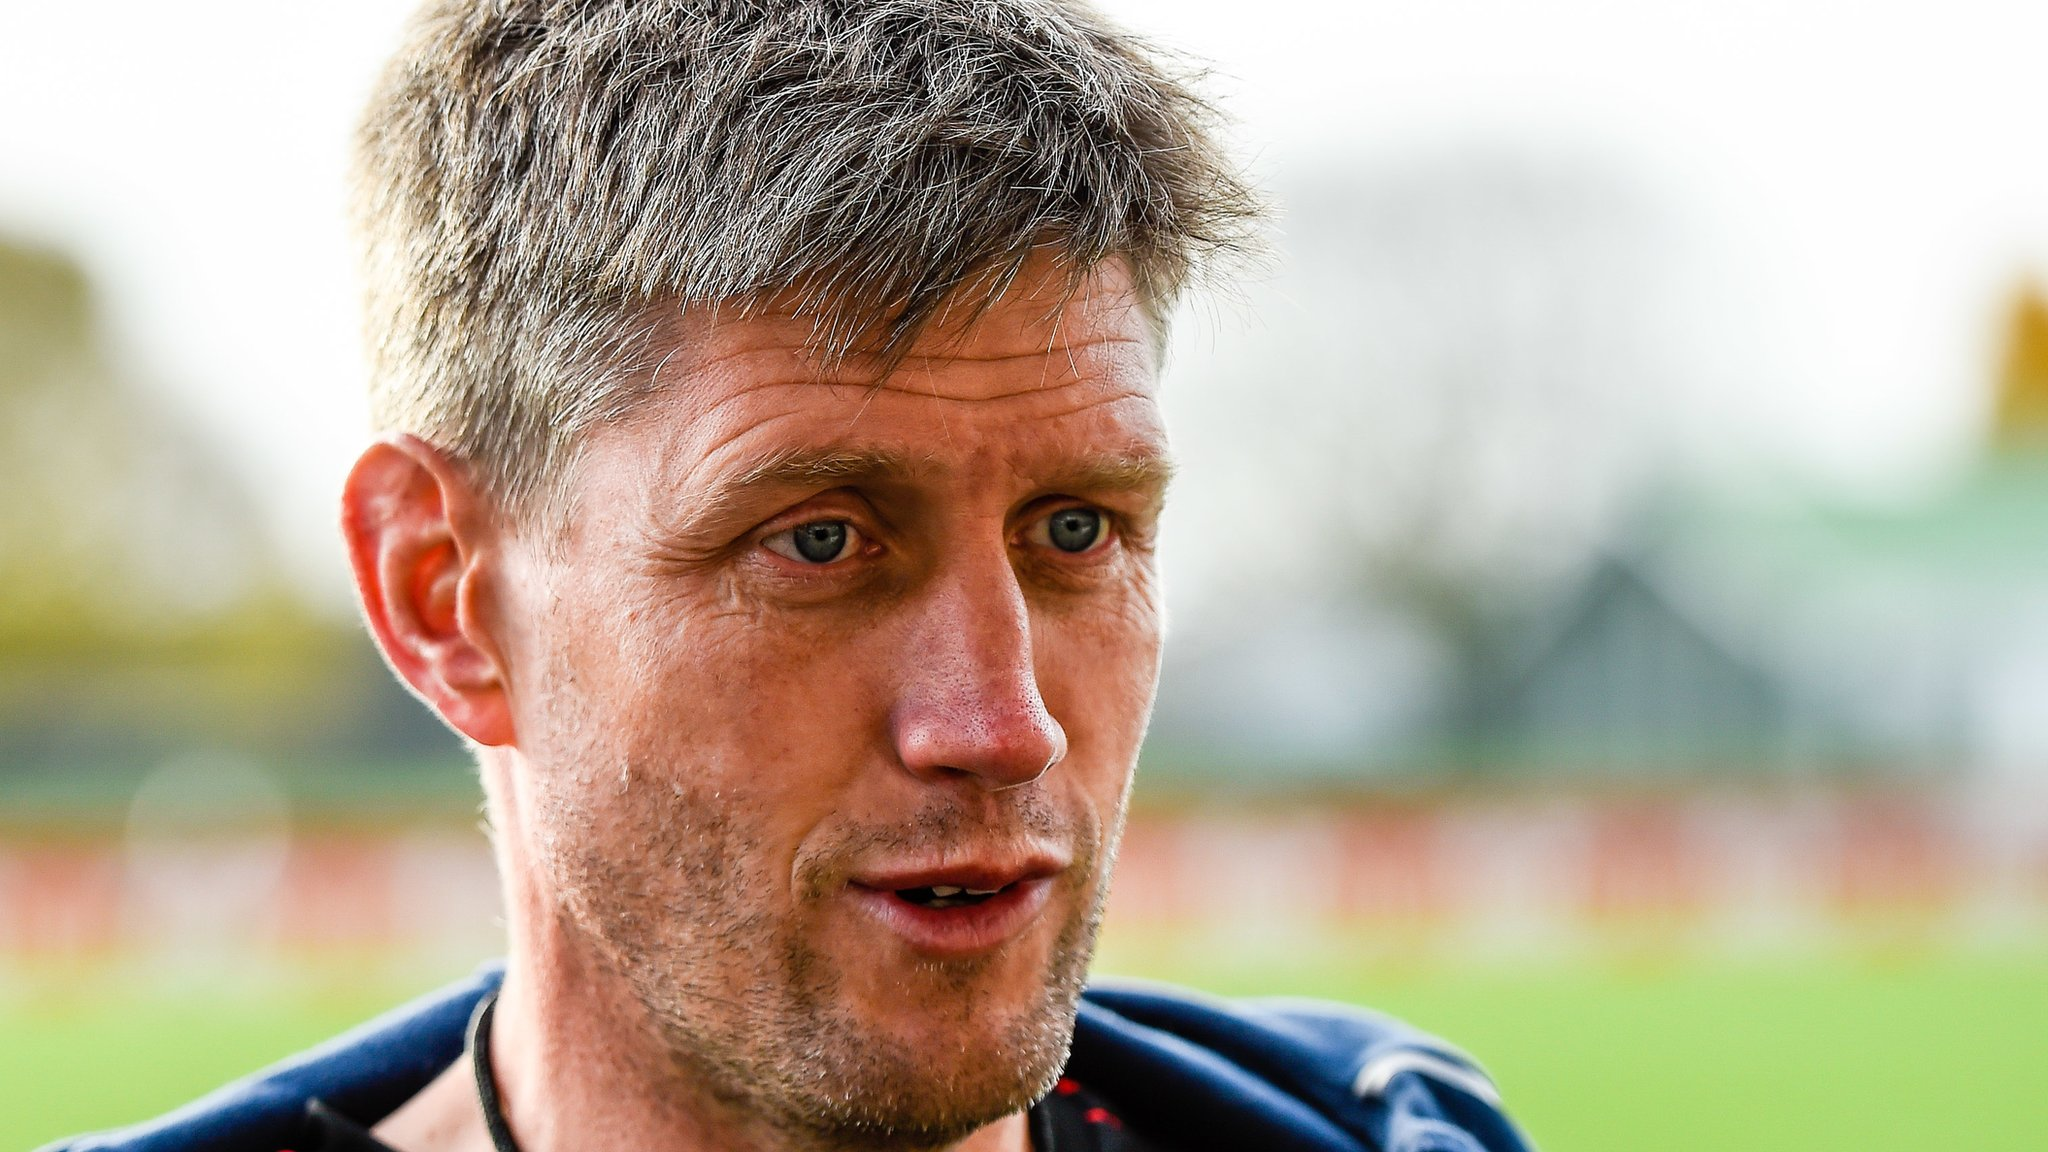 Ronan O'Gara to move from Crusaders role to take La Rochelle head coach post